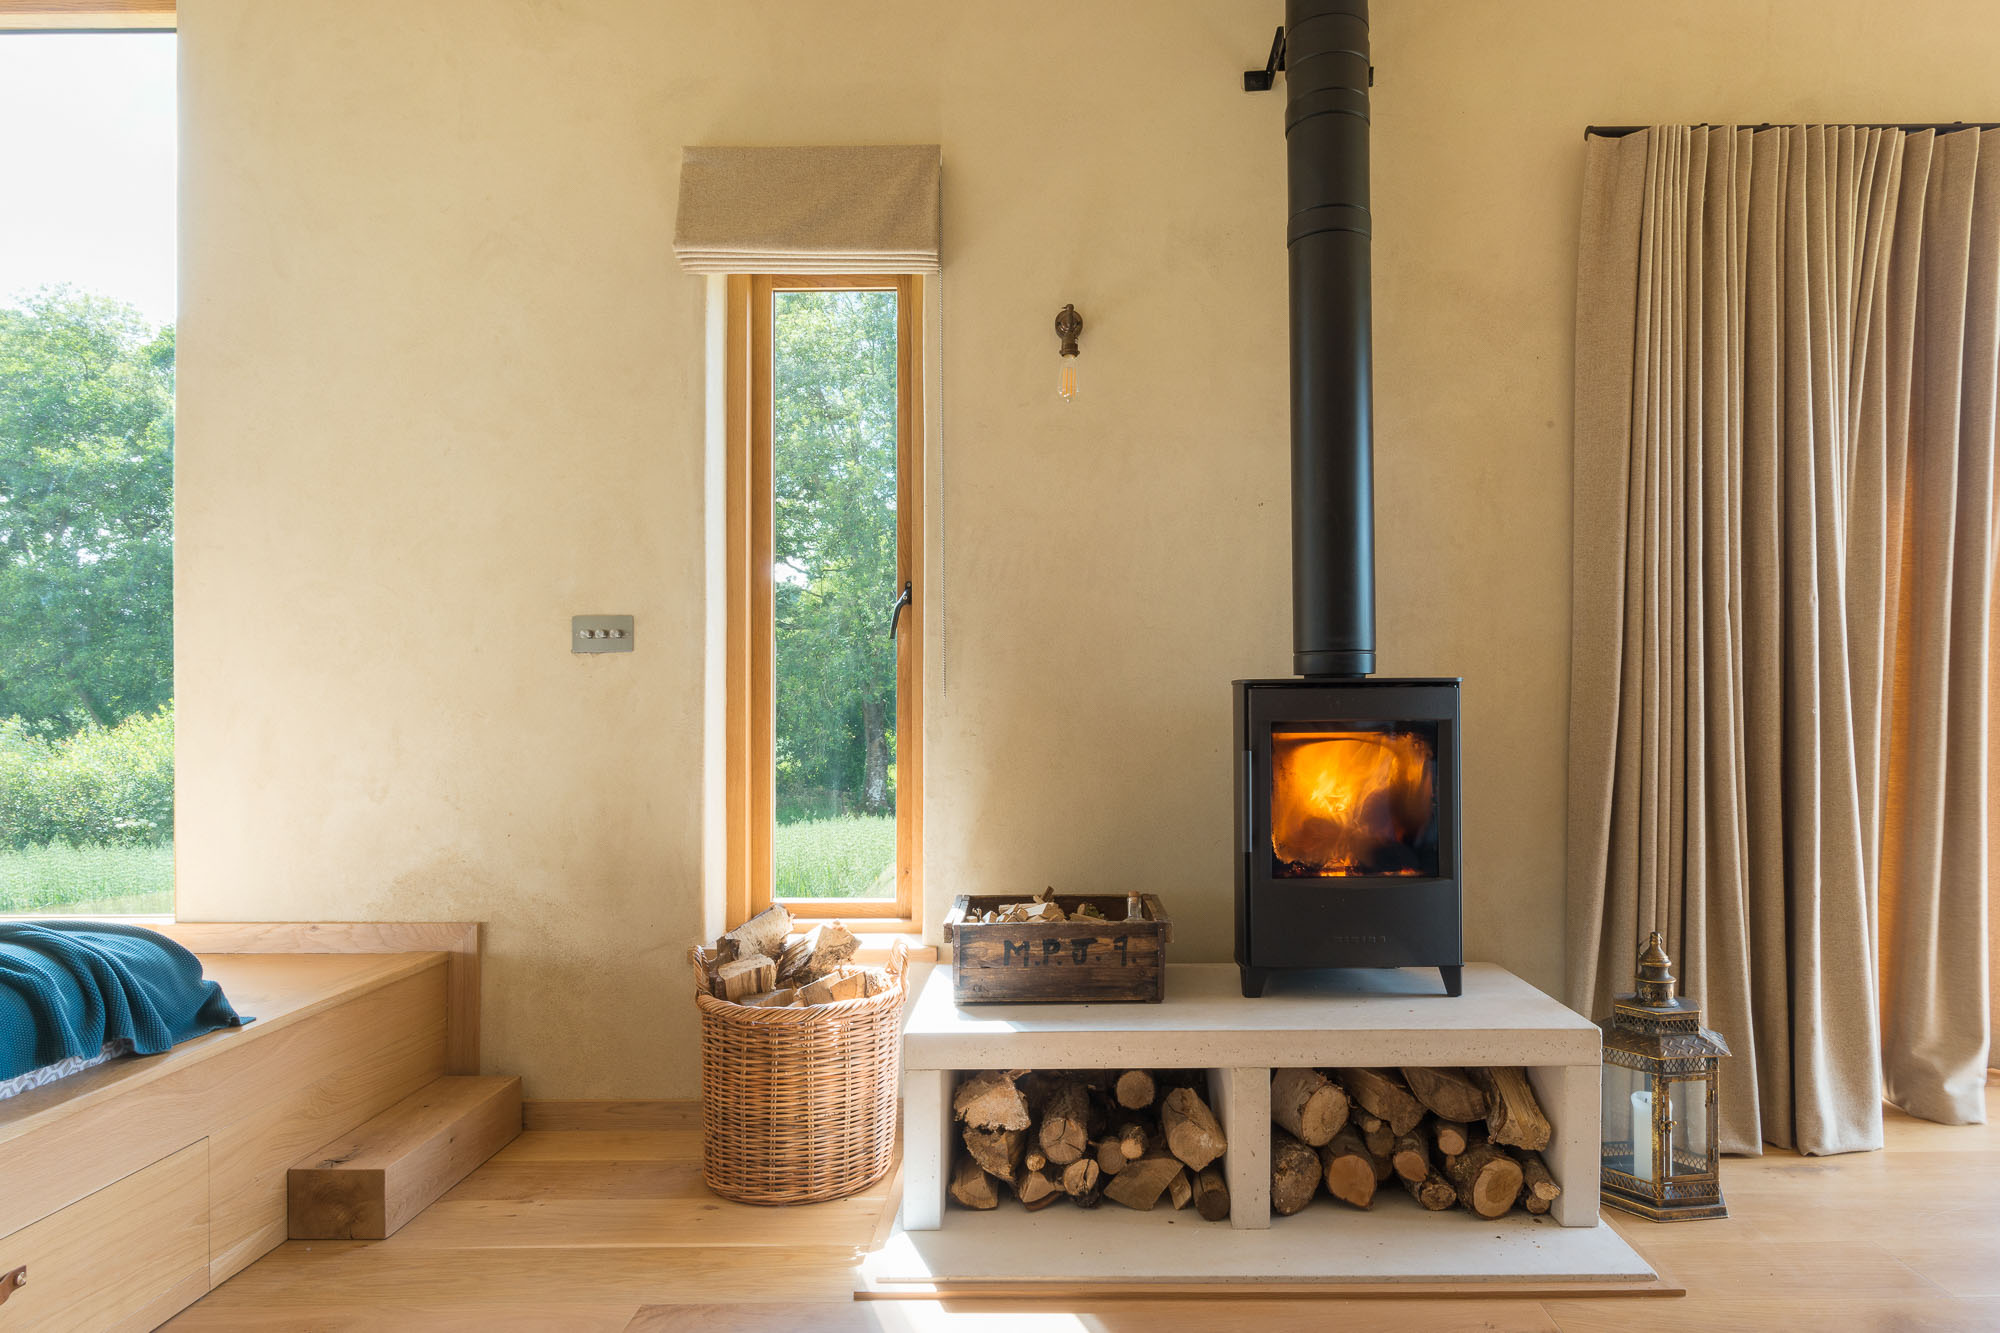 off-grid cabin interior wood burning stove, oak bed and floor, natural clay walls and windows looking over natural landscape